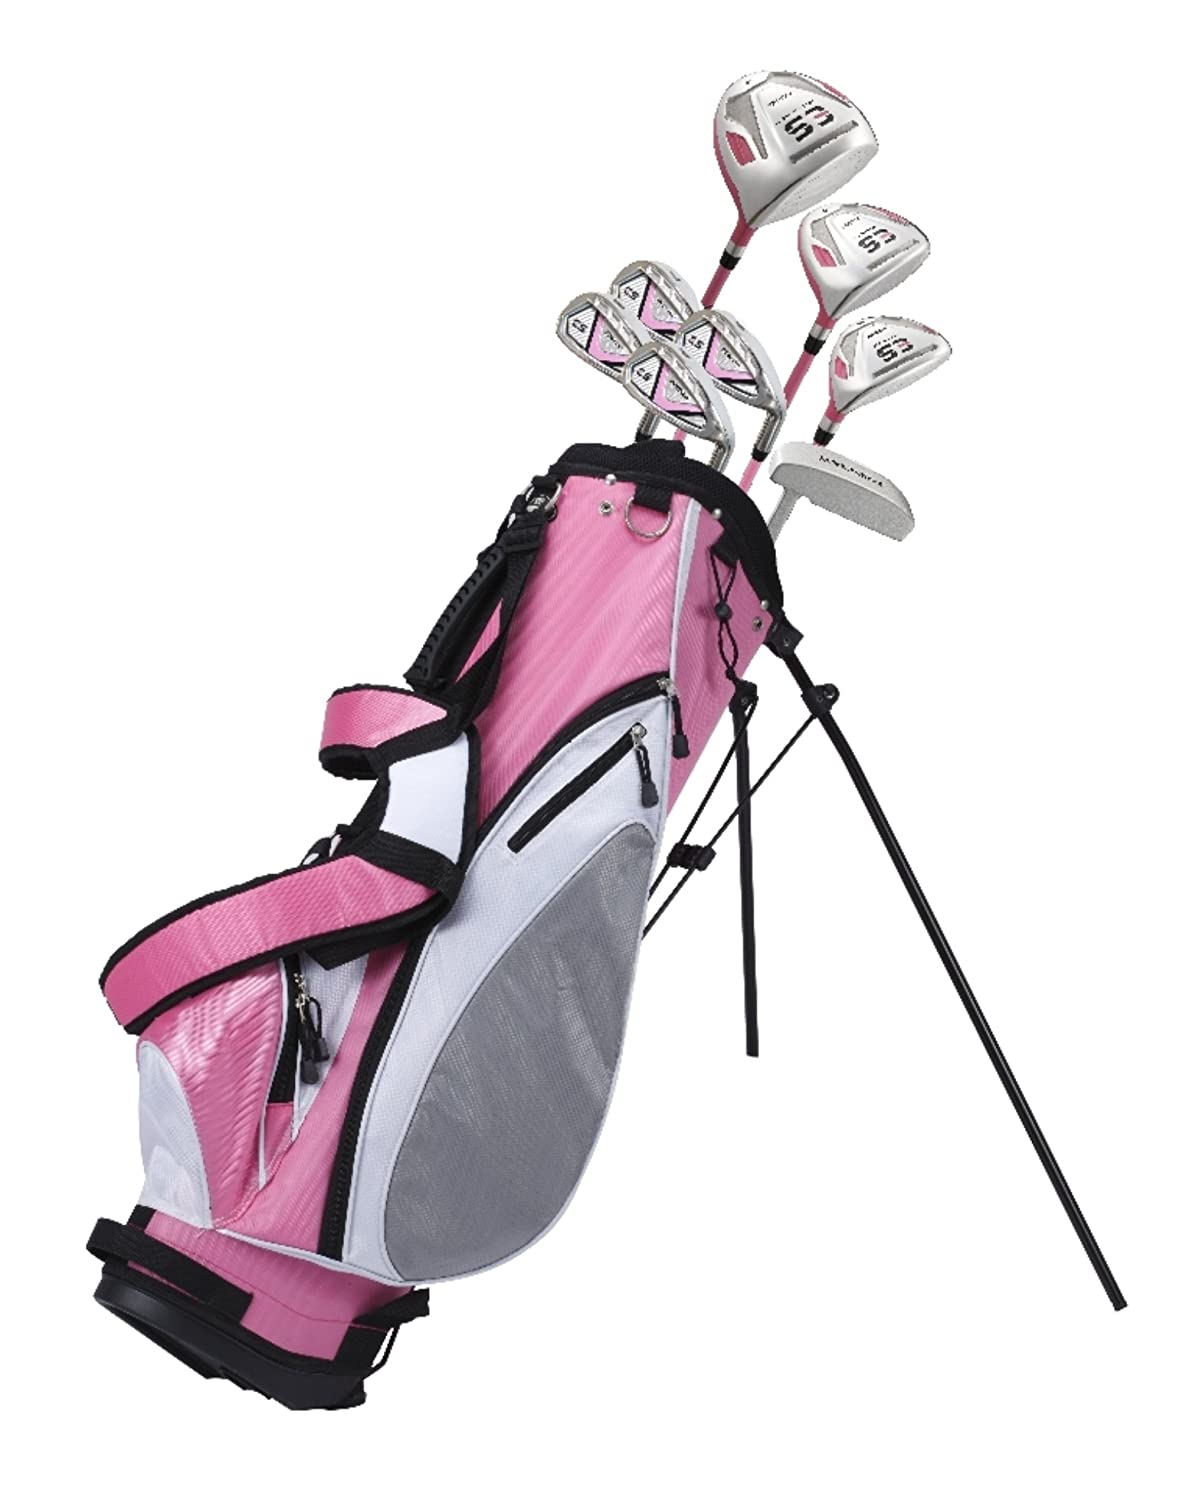 Premium Ladies Golf Club Set Pink, Right Handed, Sizes/Height - Standard, Petite, Tall